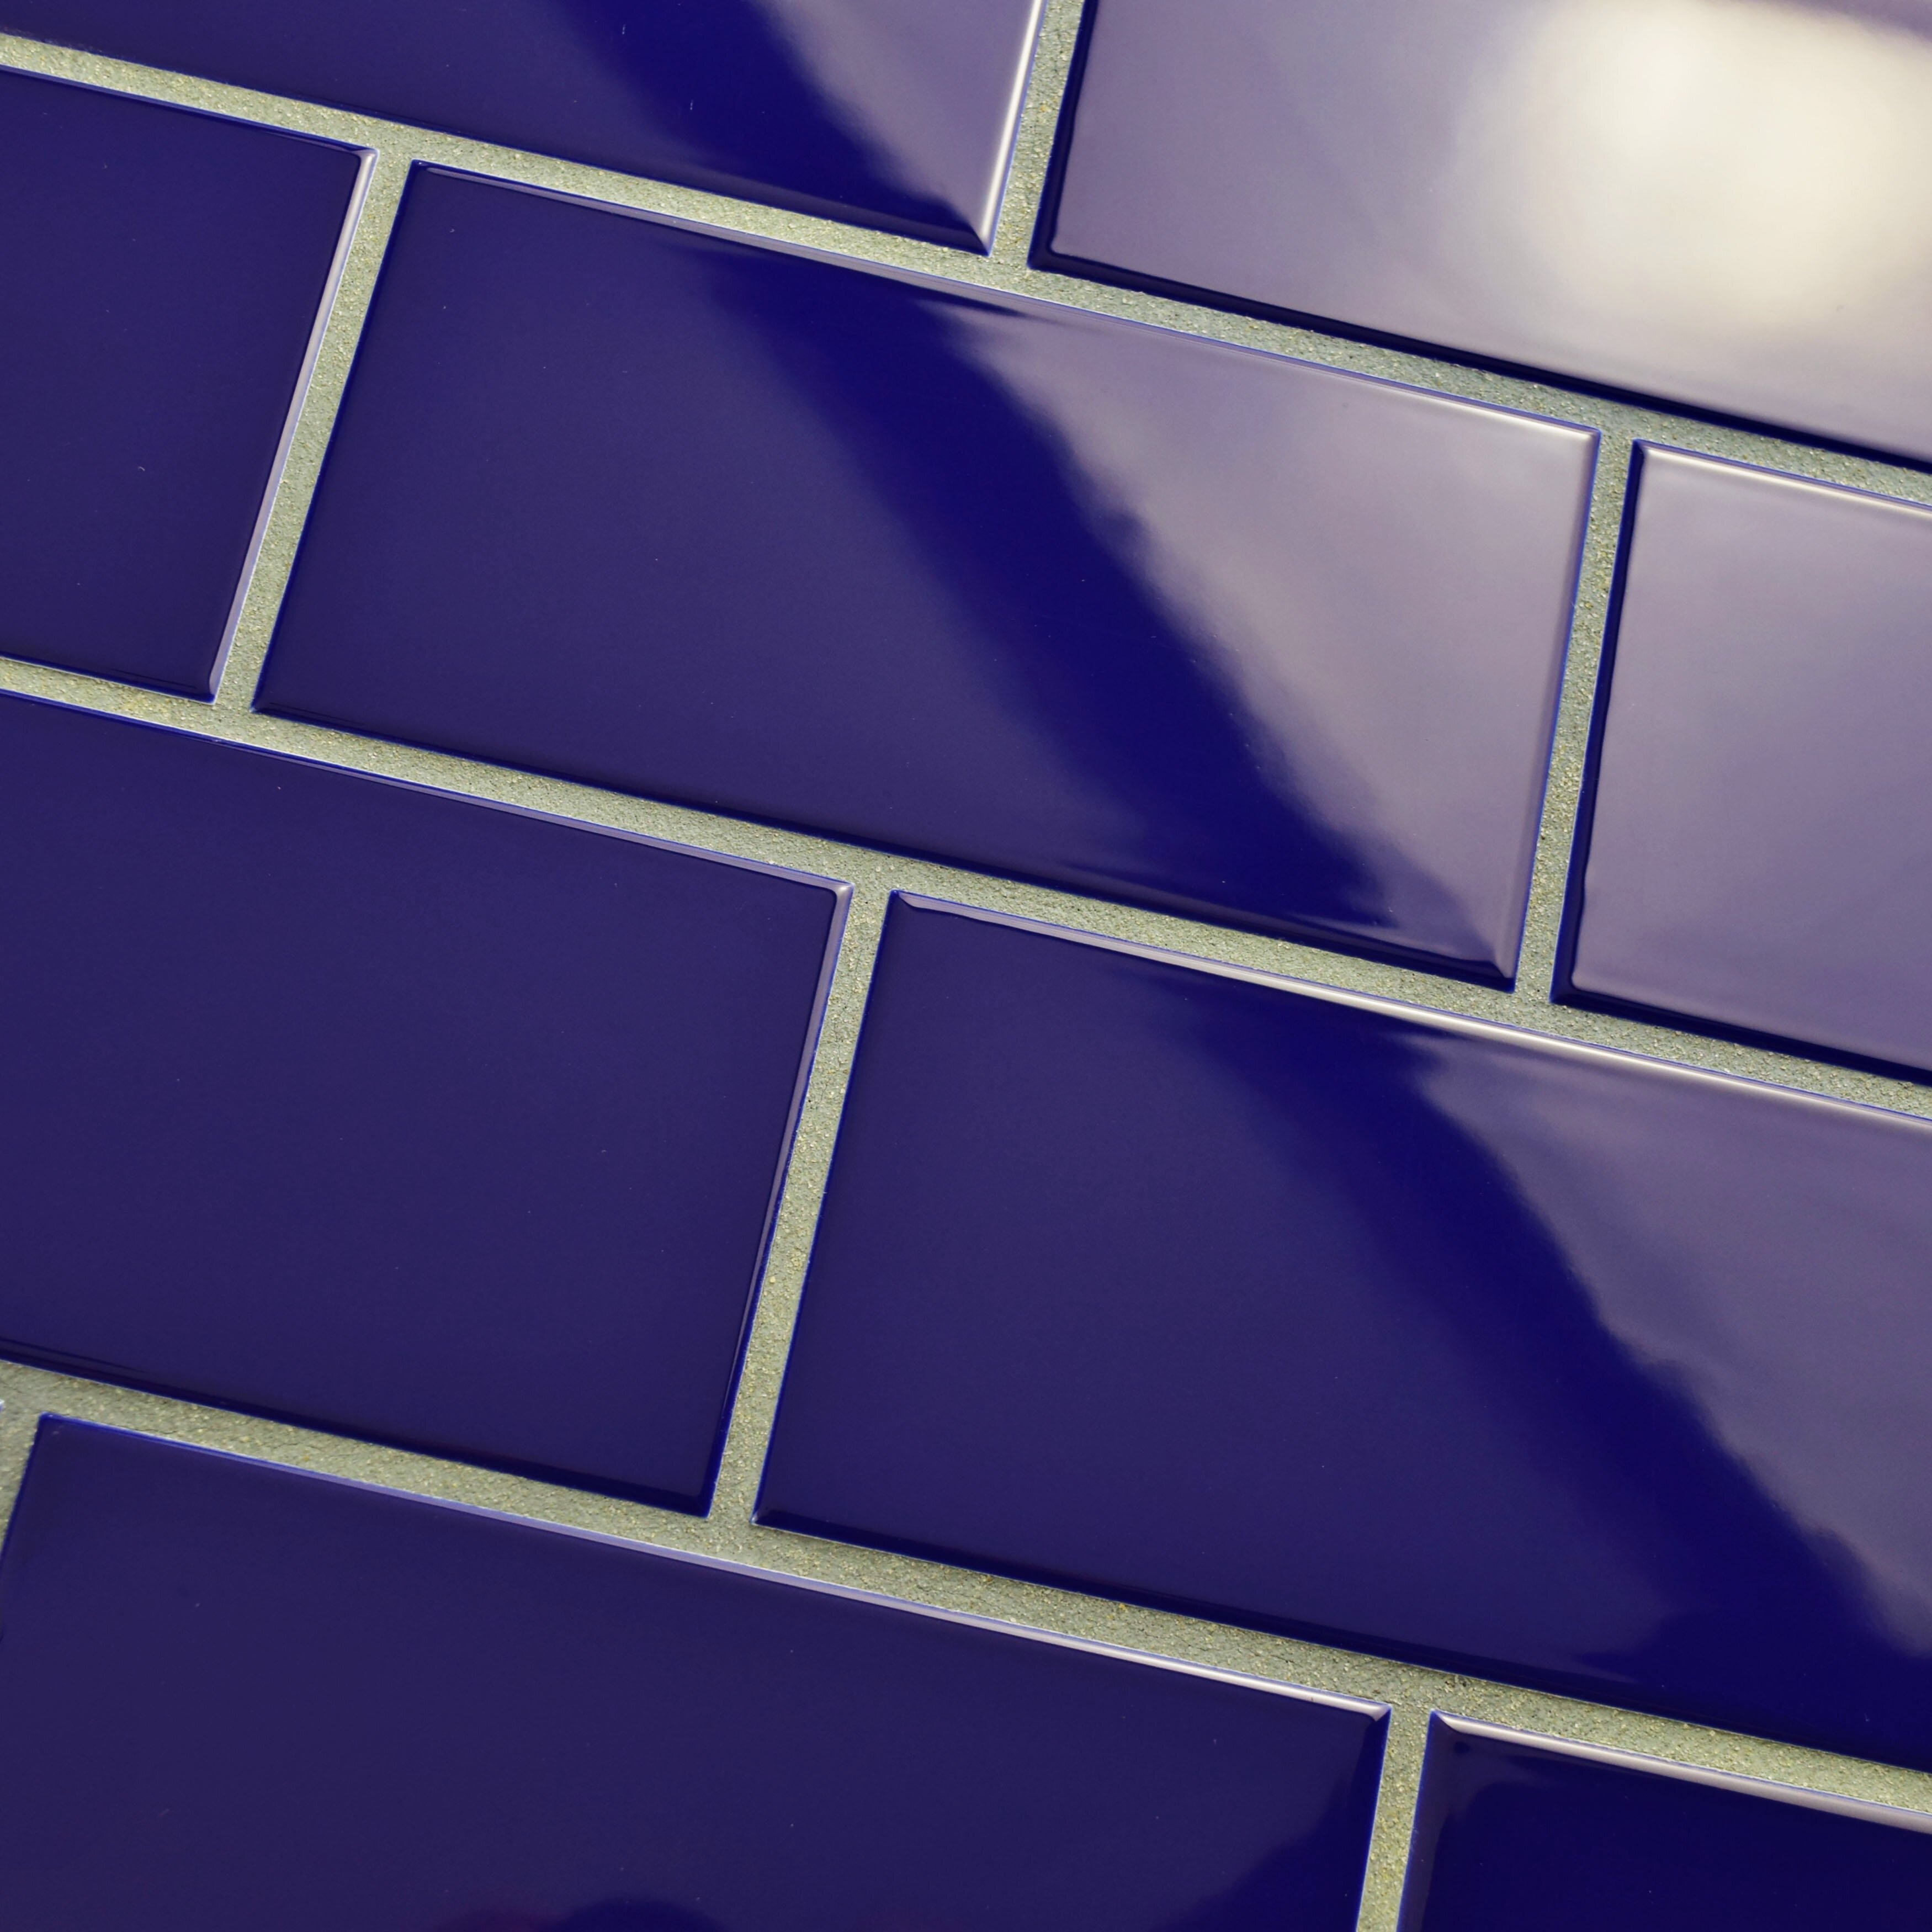 blue ceramic subway tile elitetile prospect 3 quot x 6 quot ceramic subway tile in royal 4803